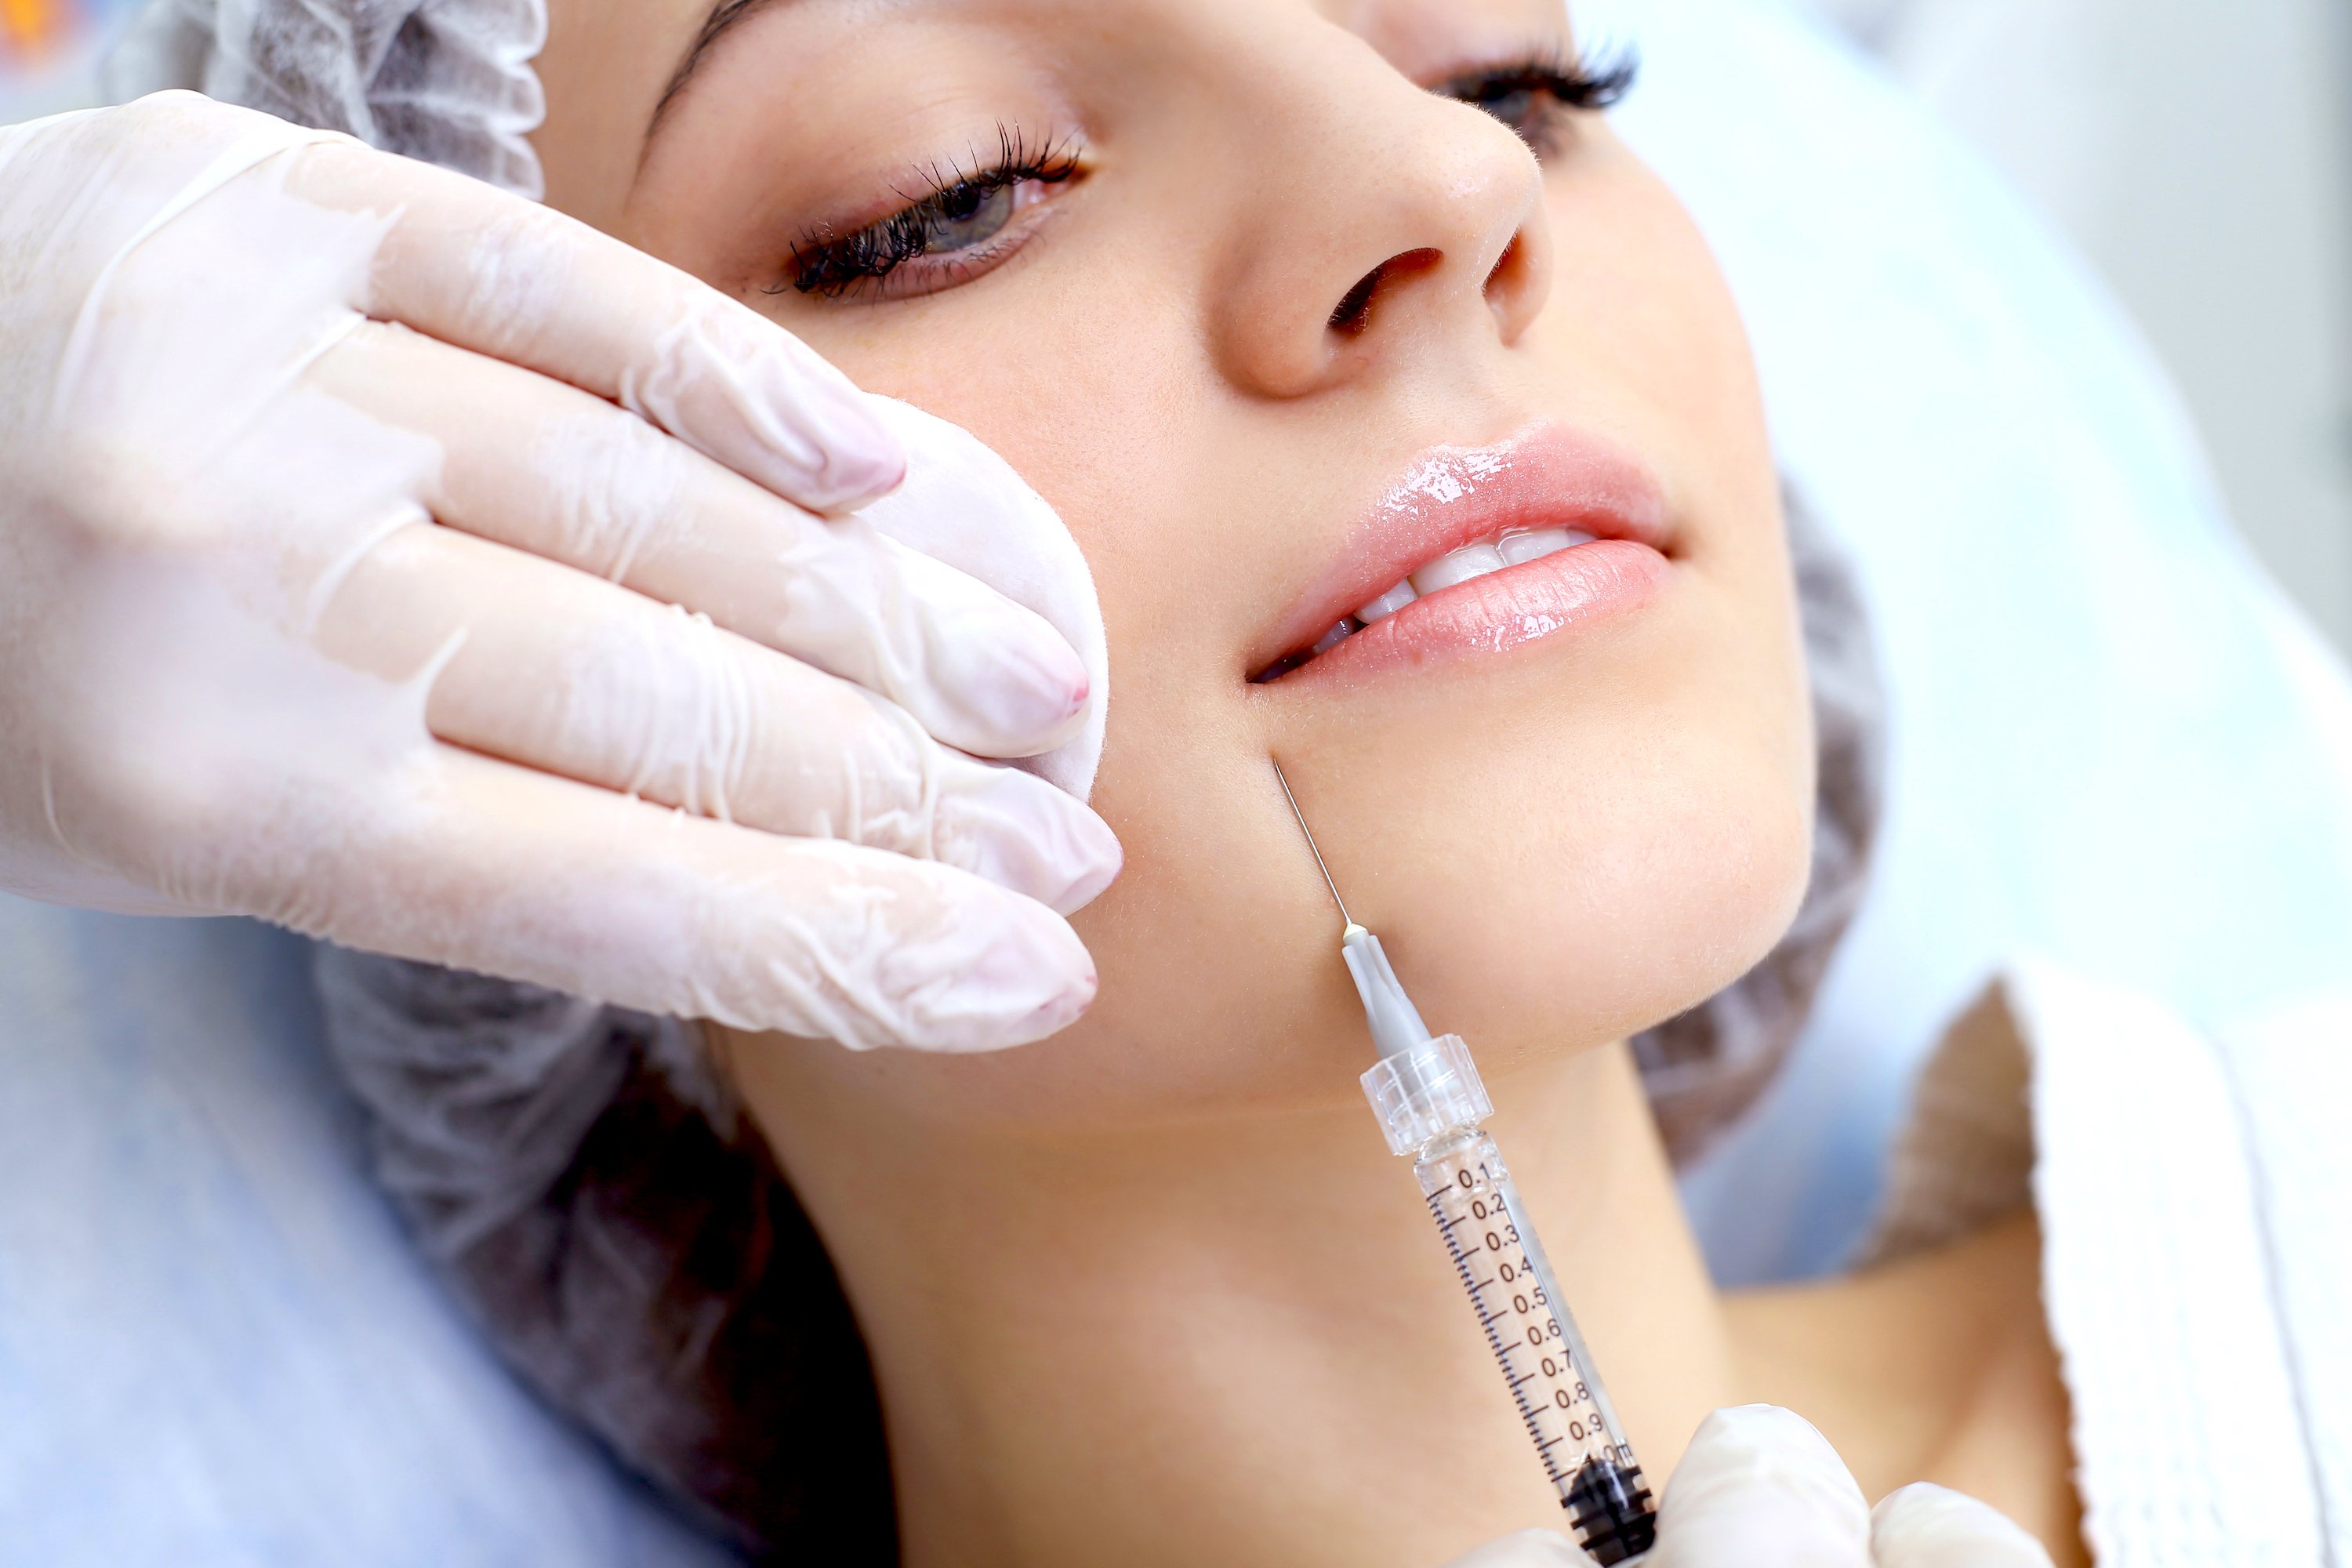 Questions you should ask before getting Botox